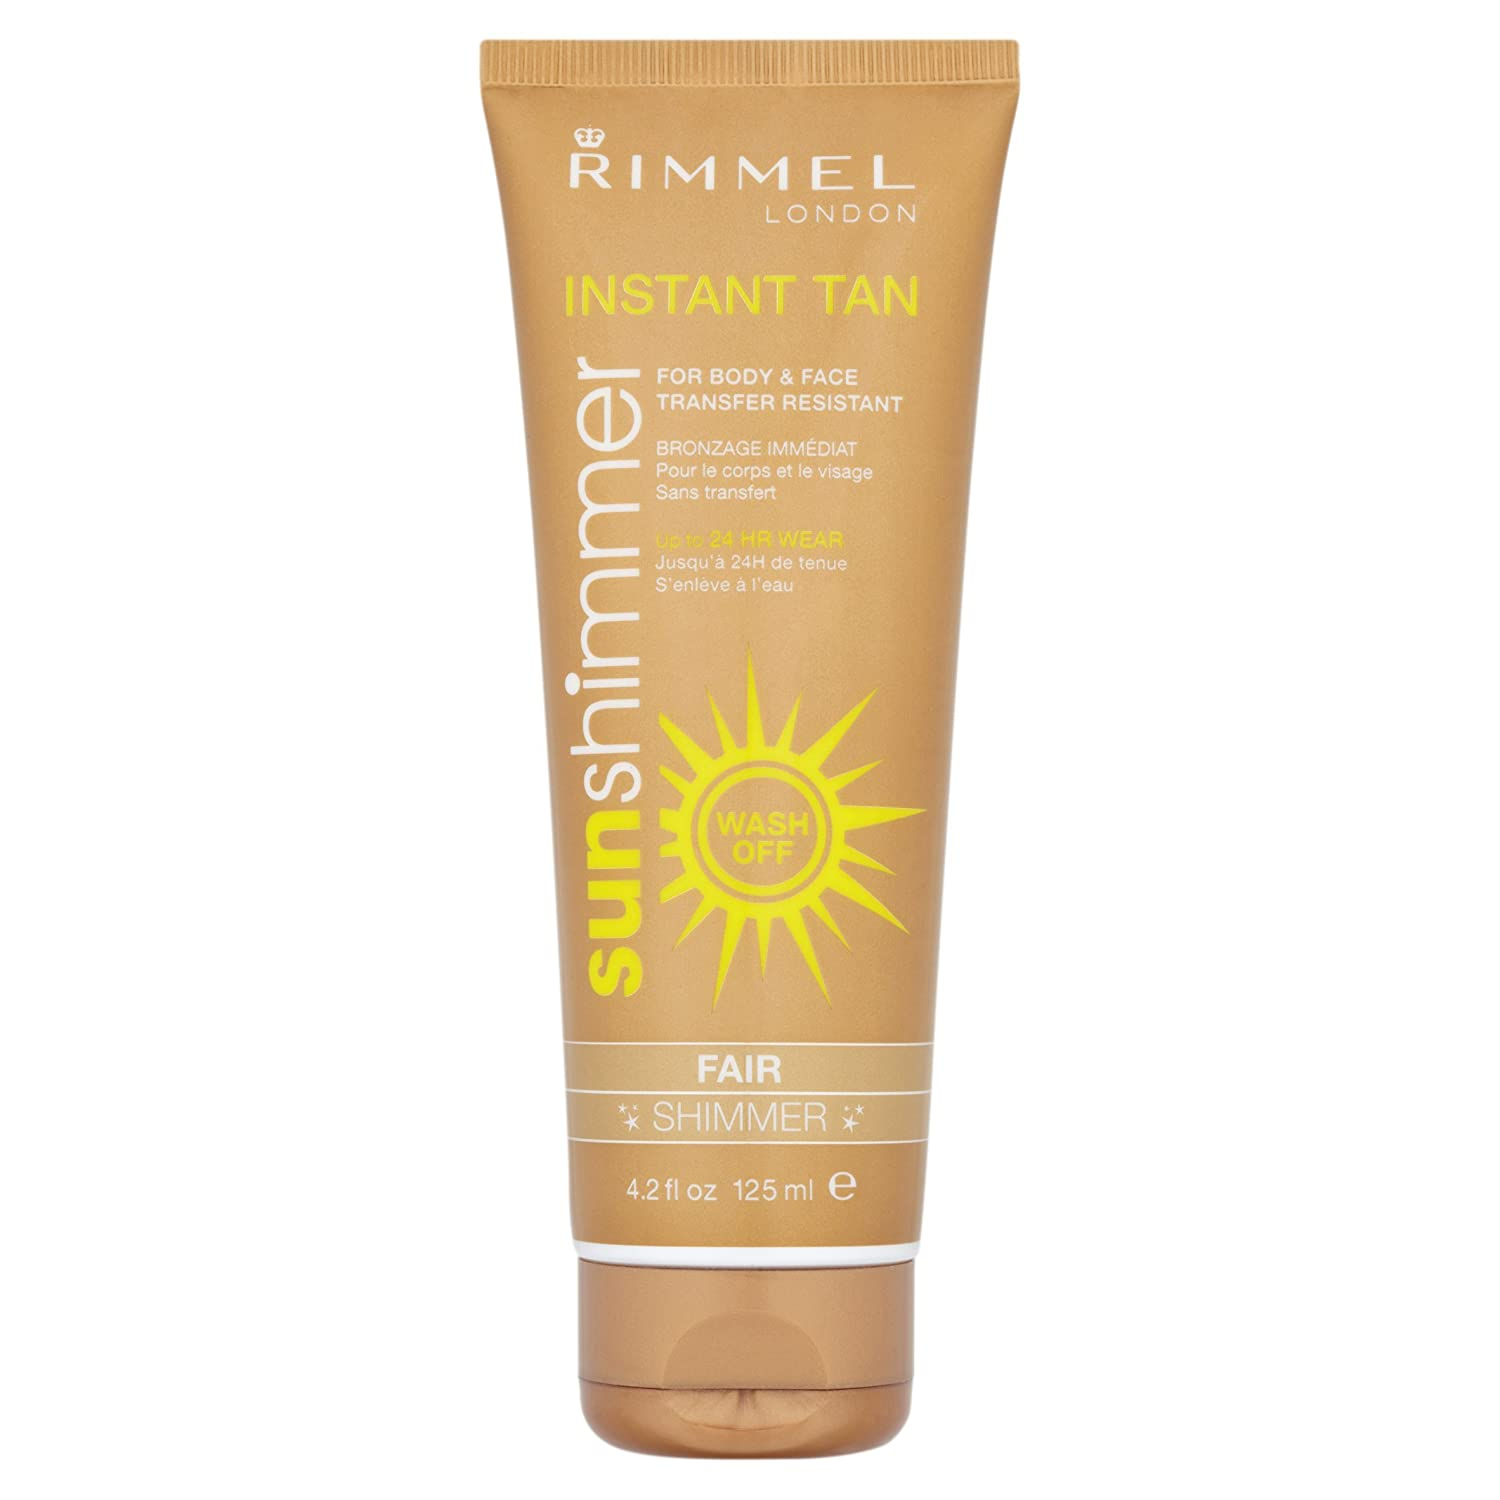 Sunshimmer Instant Tan Makeup 125 ml - Fair Shimmer Coty 34019858002